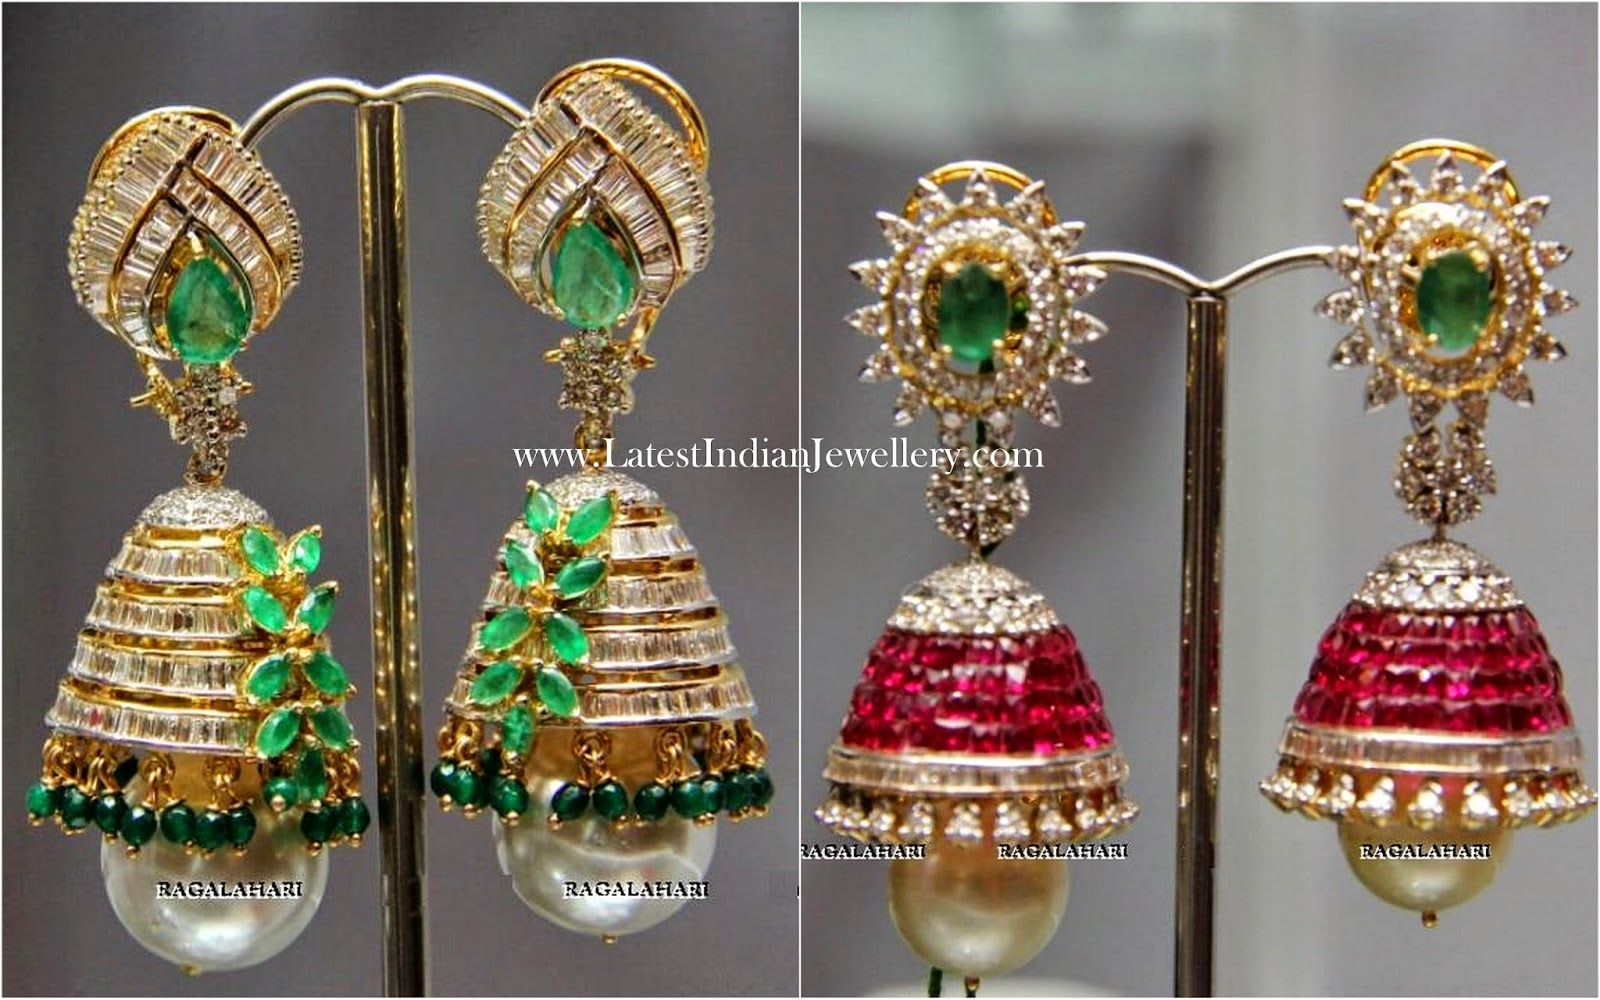 Uniquely Designed Diamond Jhumkas